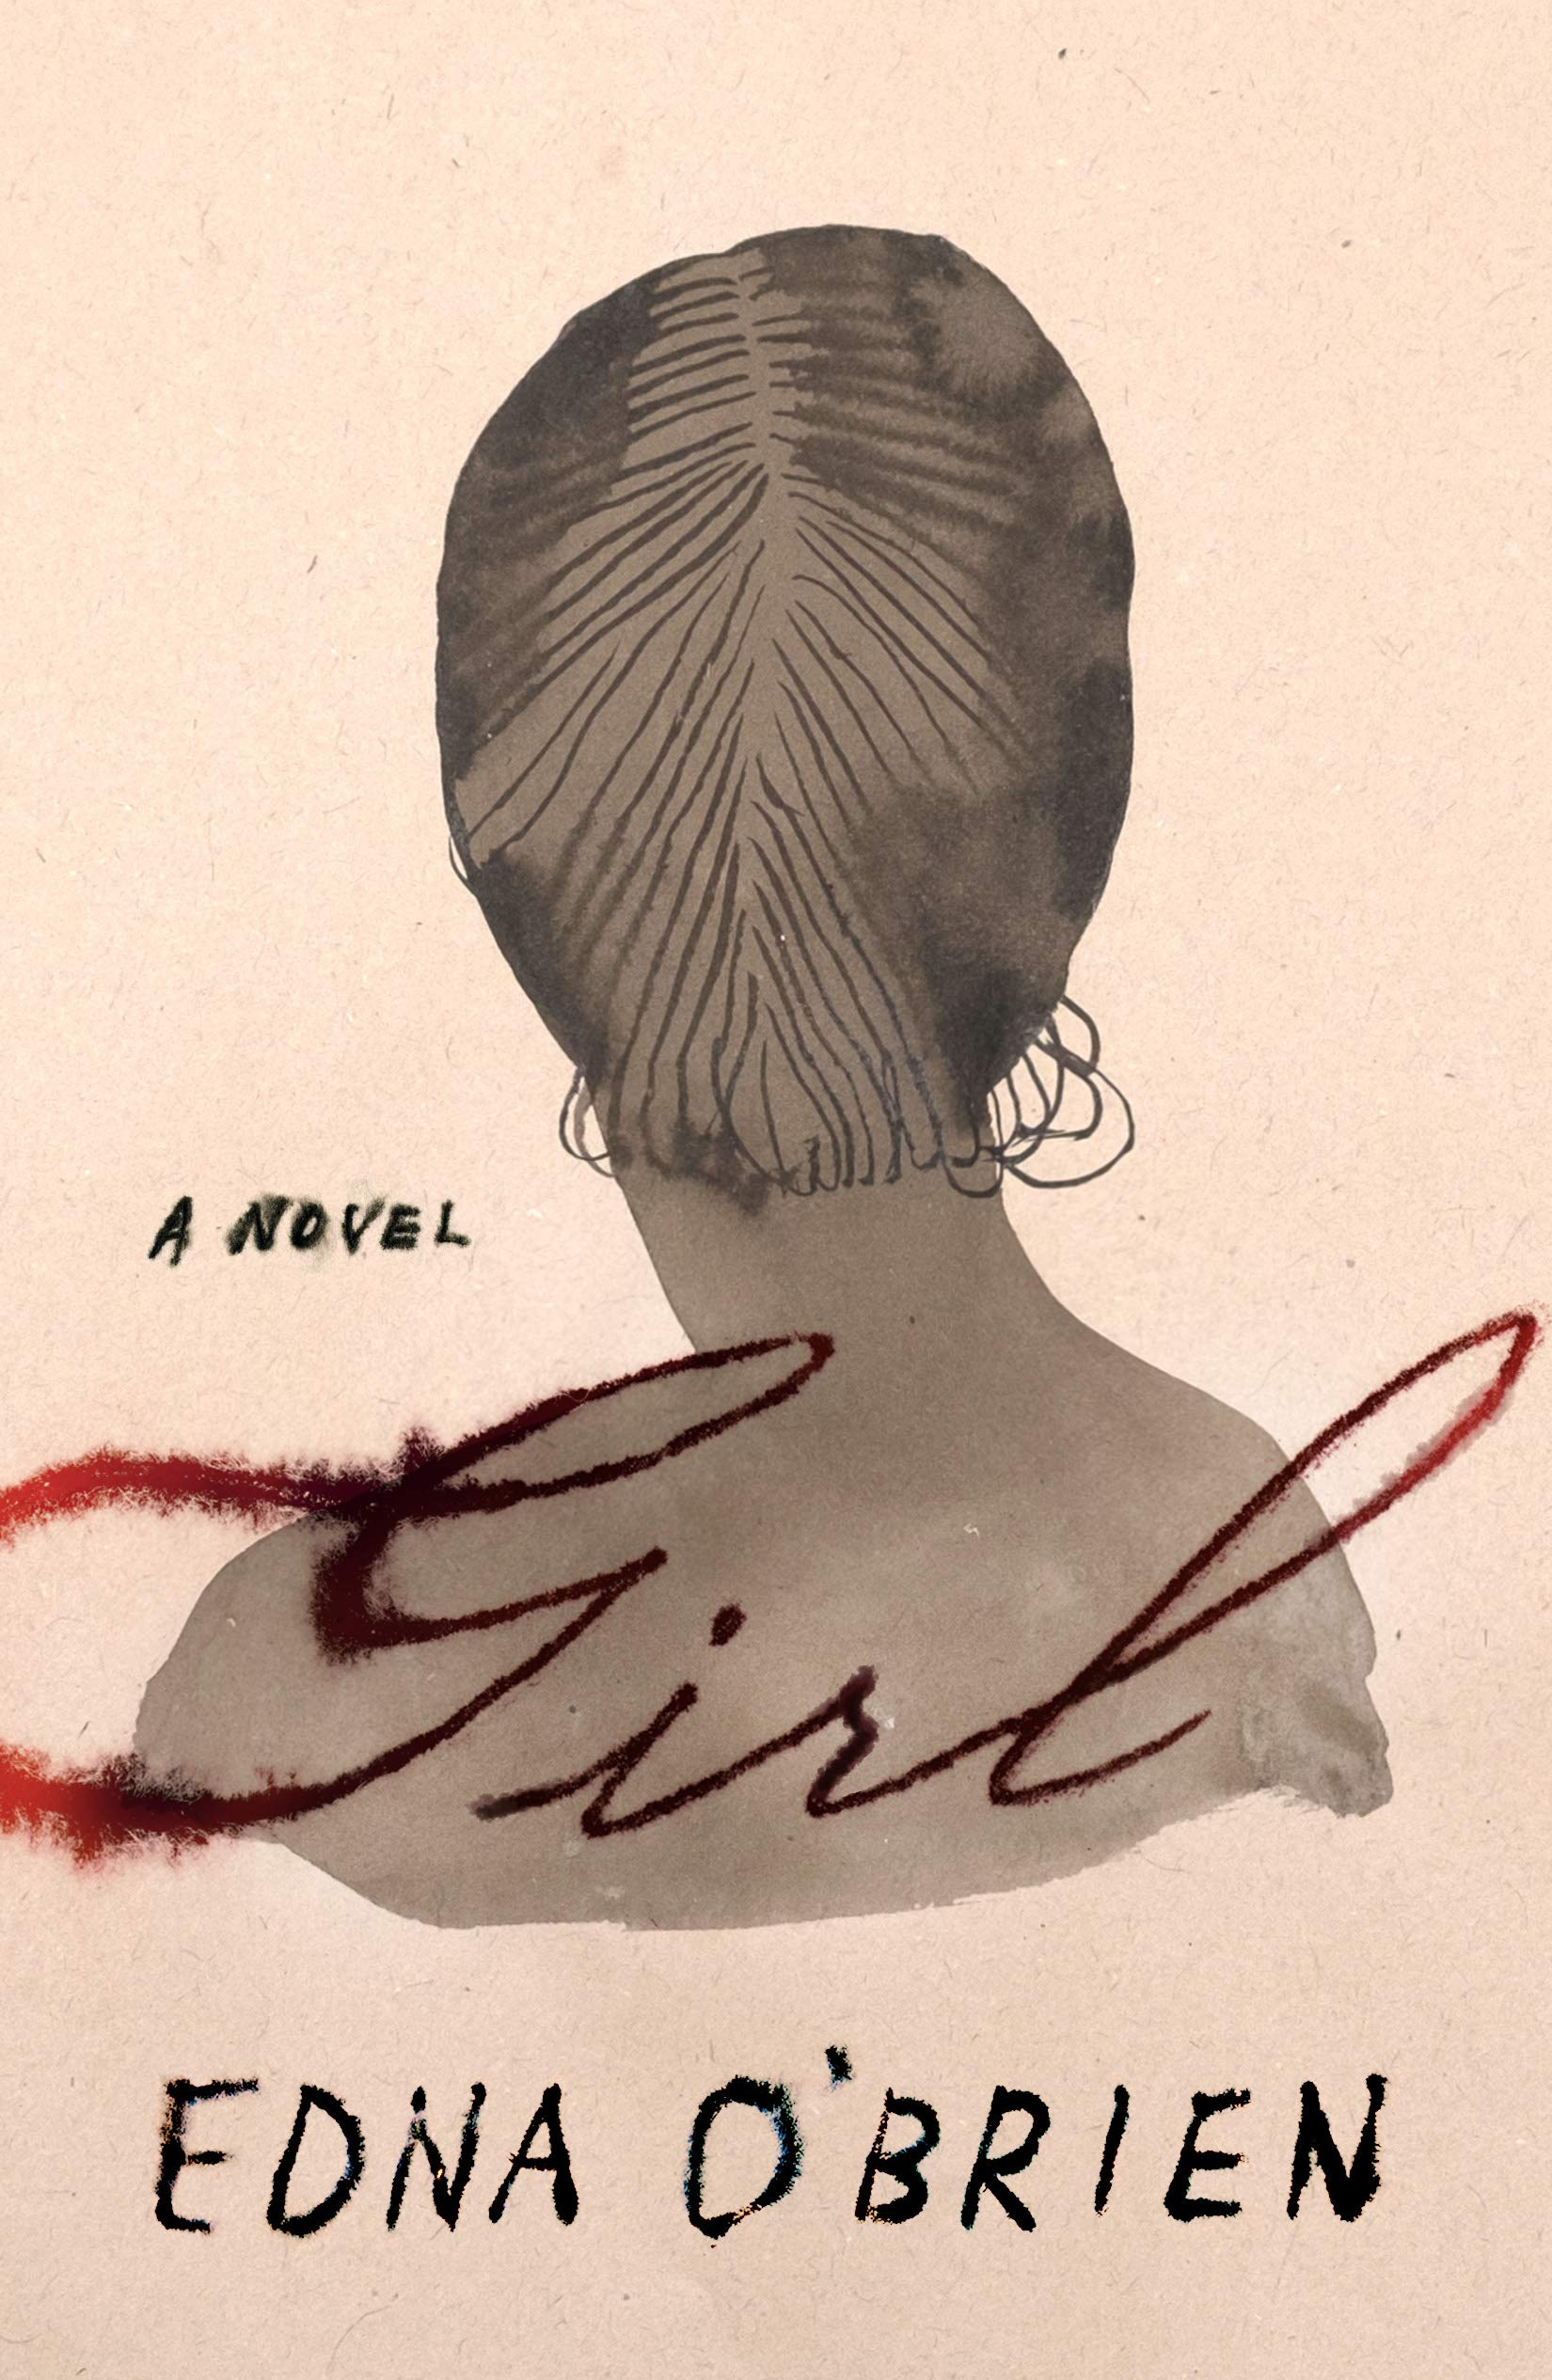 Amazon.com: Girl: A Novel (9780374162559): O'Brien, Edna: Books